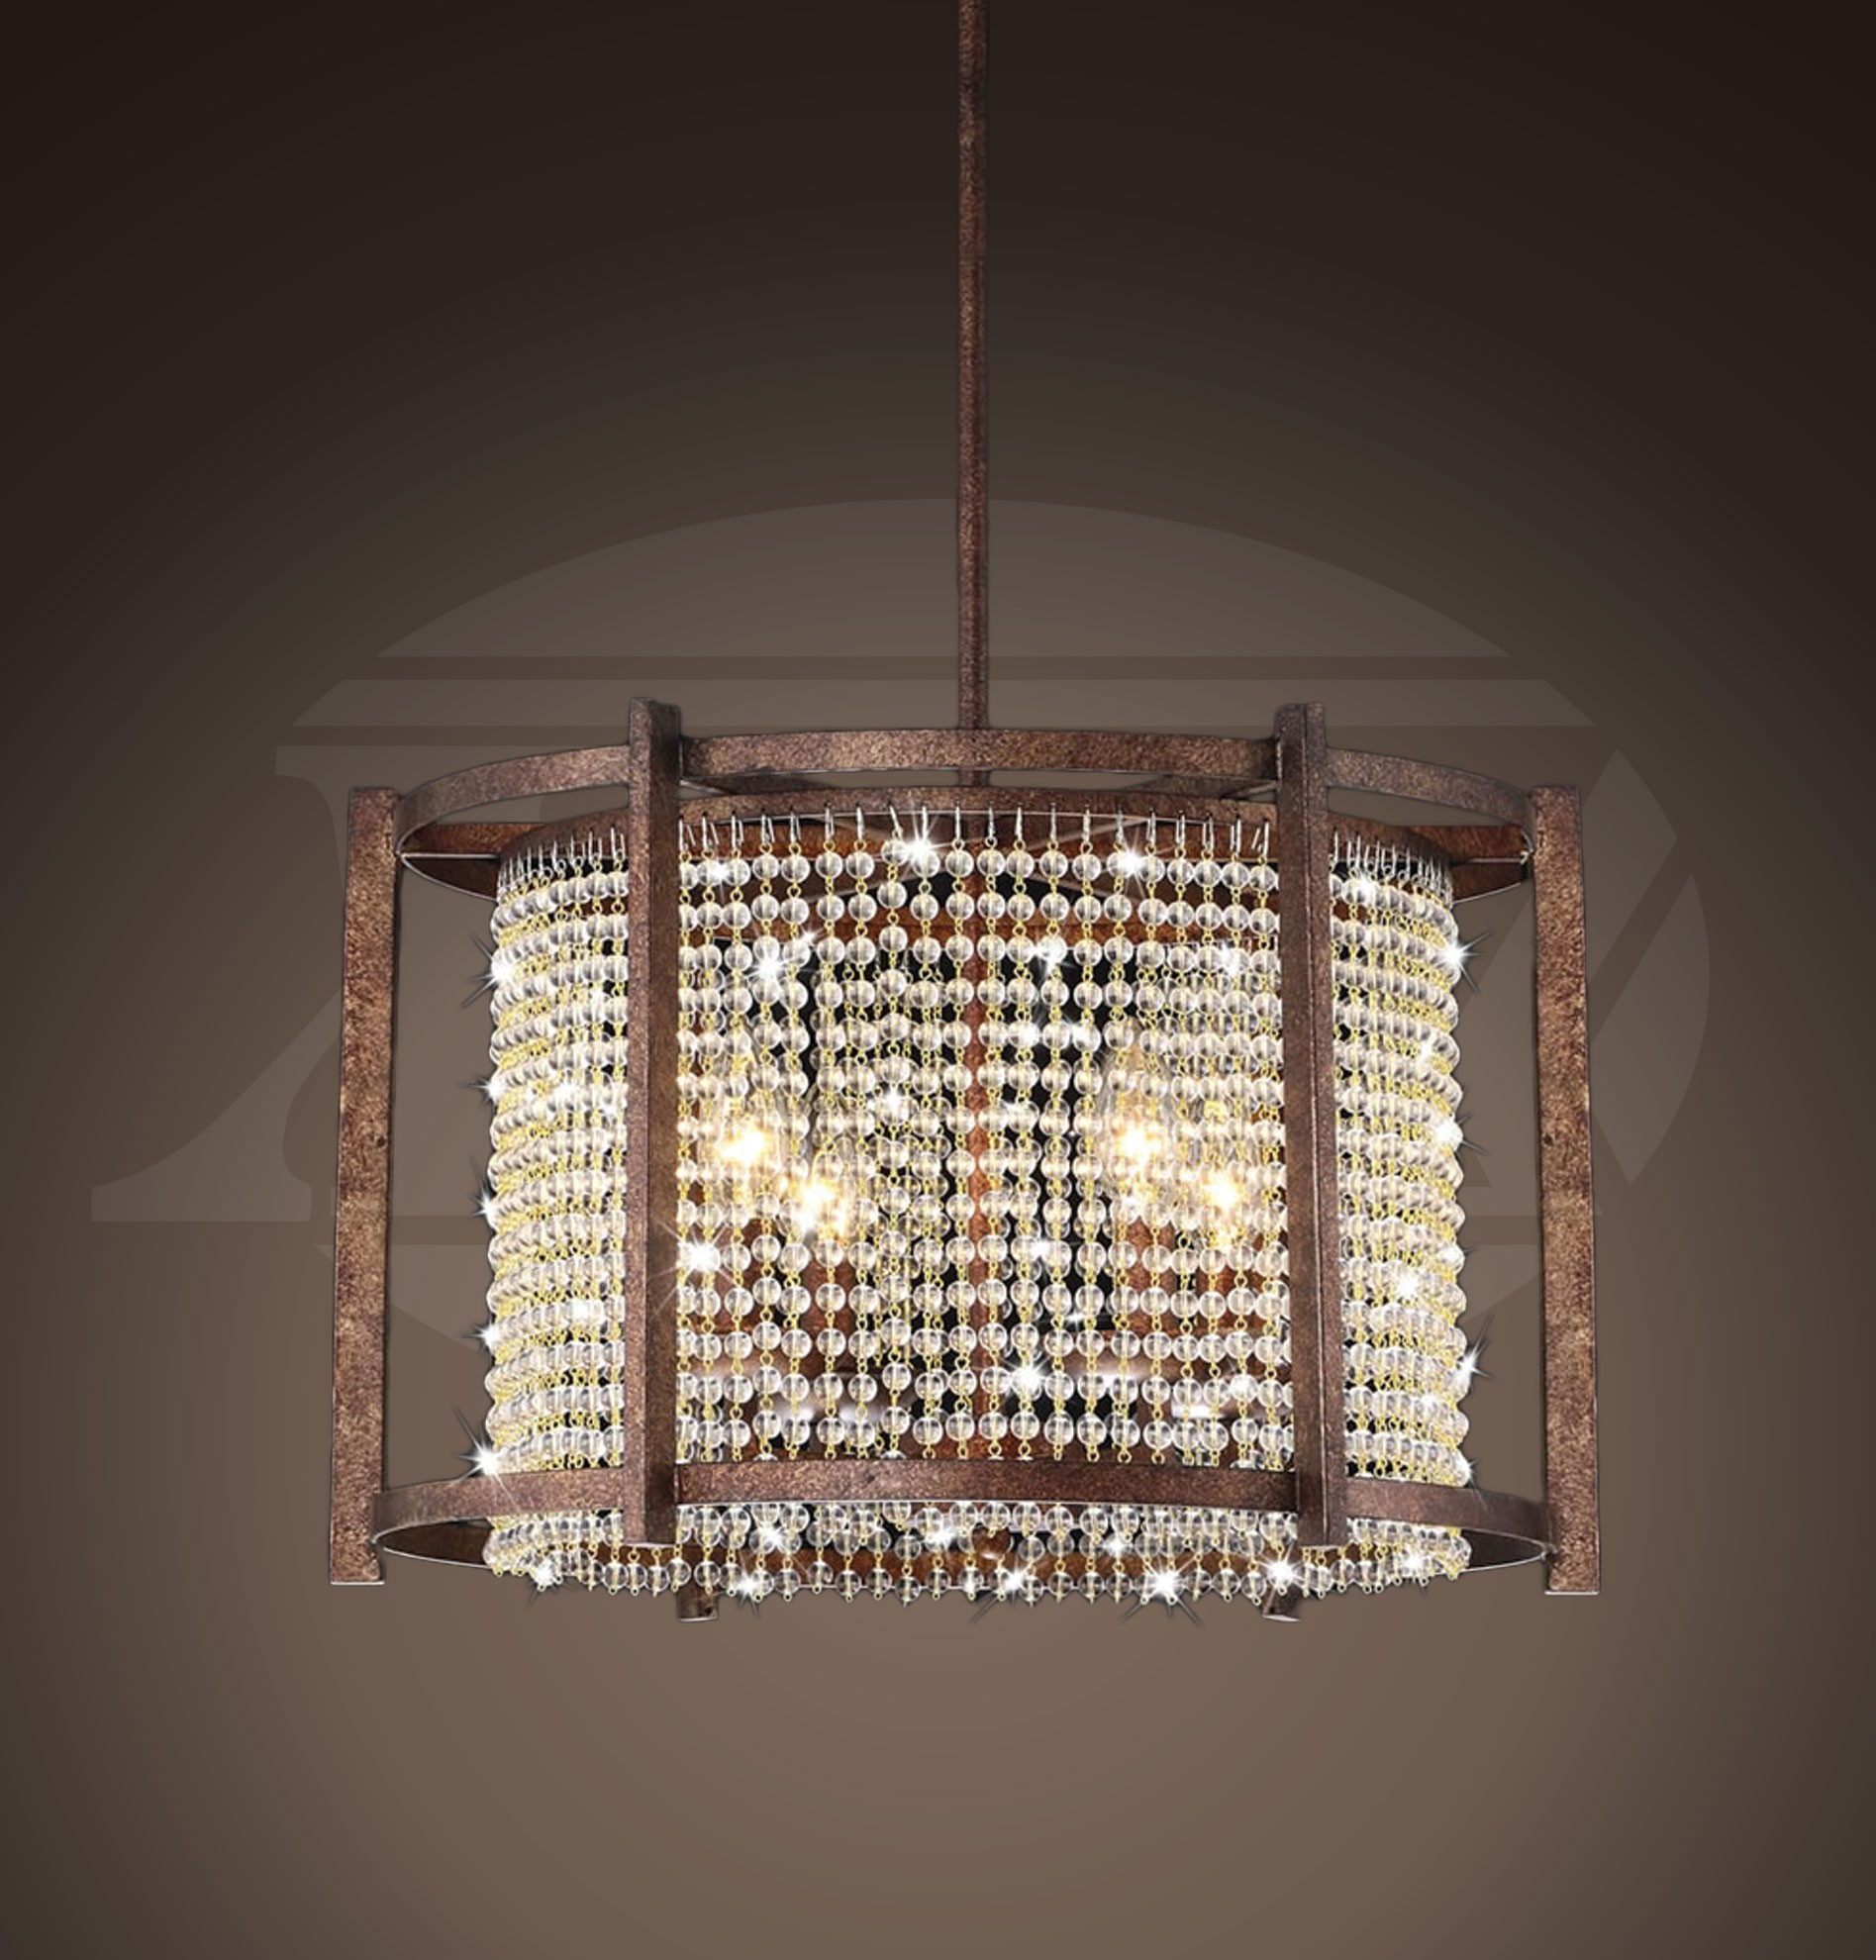 aesthetic pendant ideas lighting examples bulbs kitchen hanging ursula reduced with over modern ball rustic light from image large swarovski crystal island style chandelier for